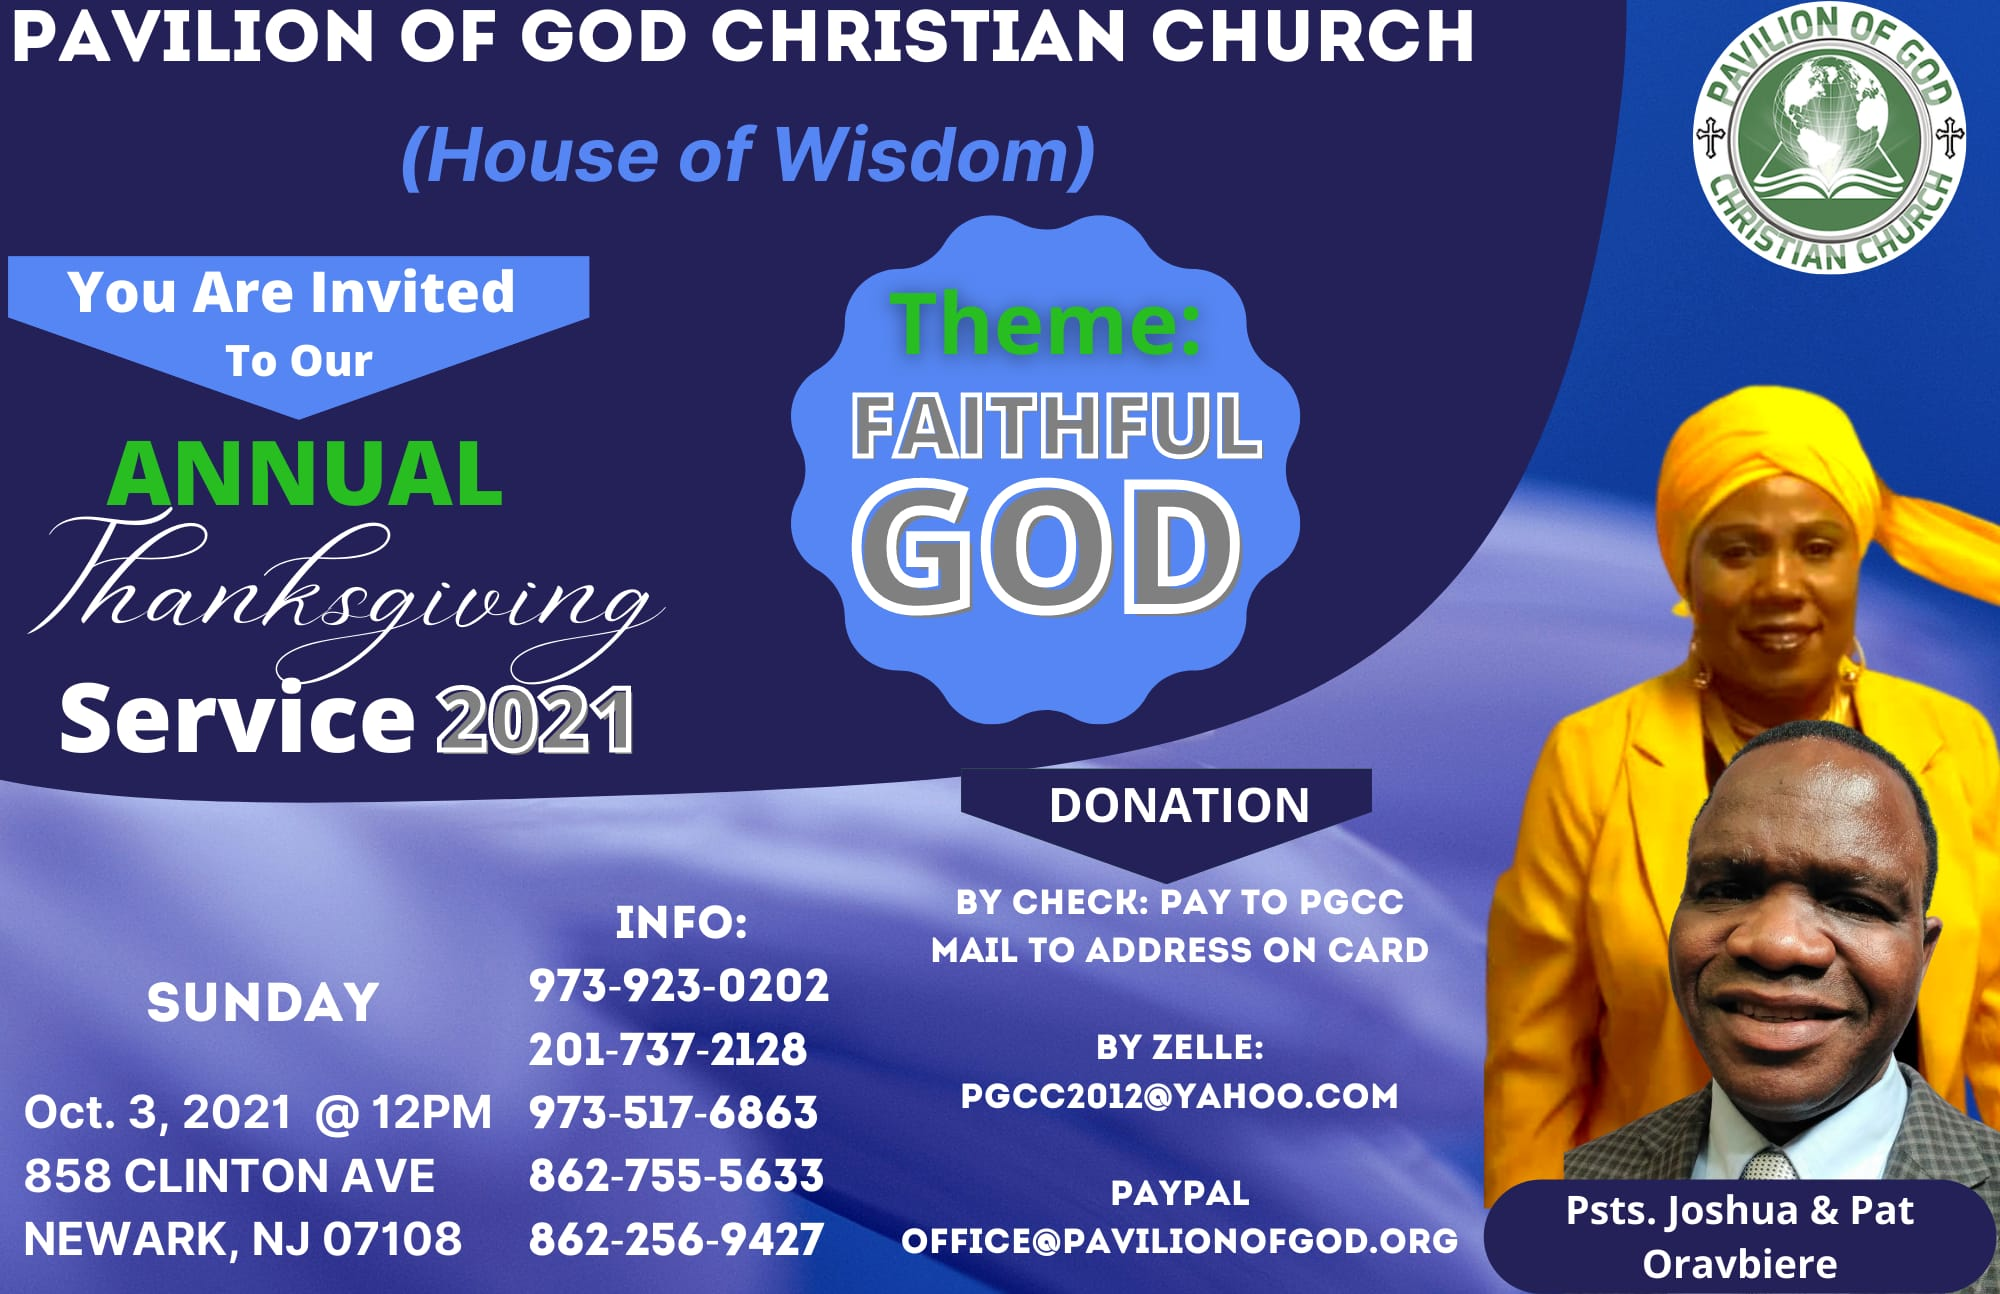 2021 Annual Thanksgiving Service